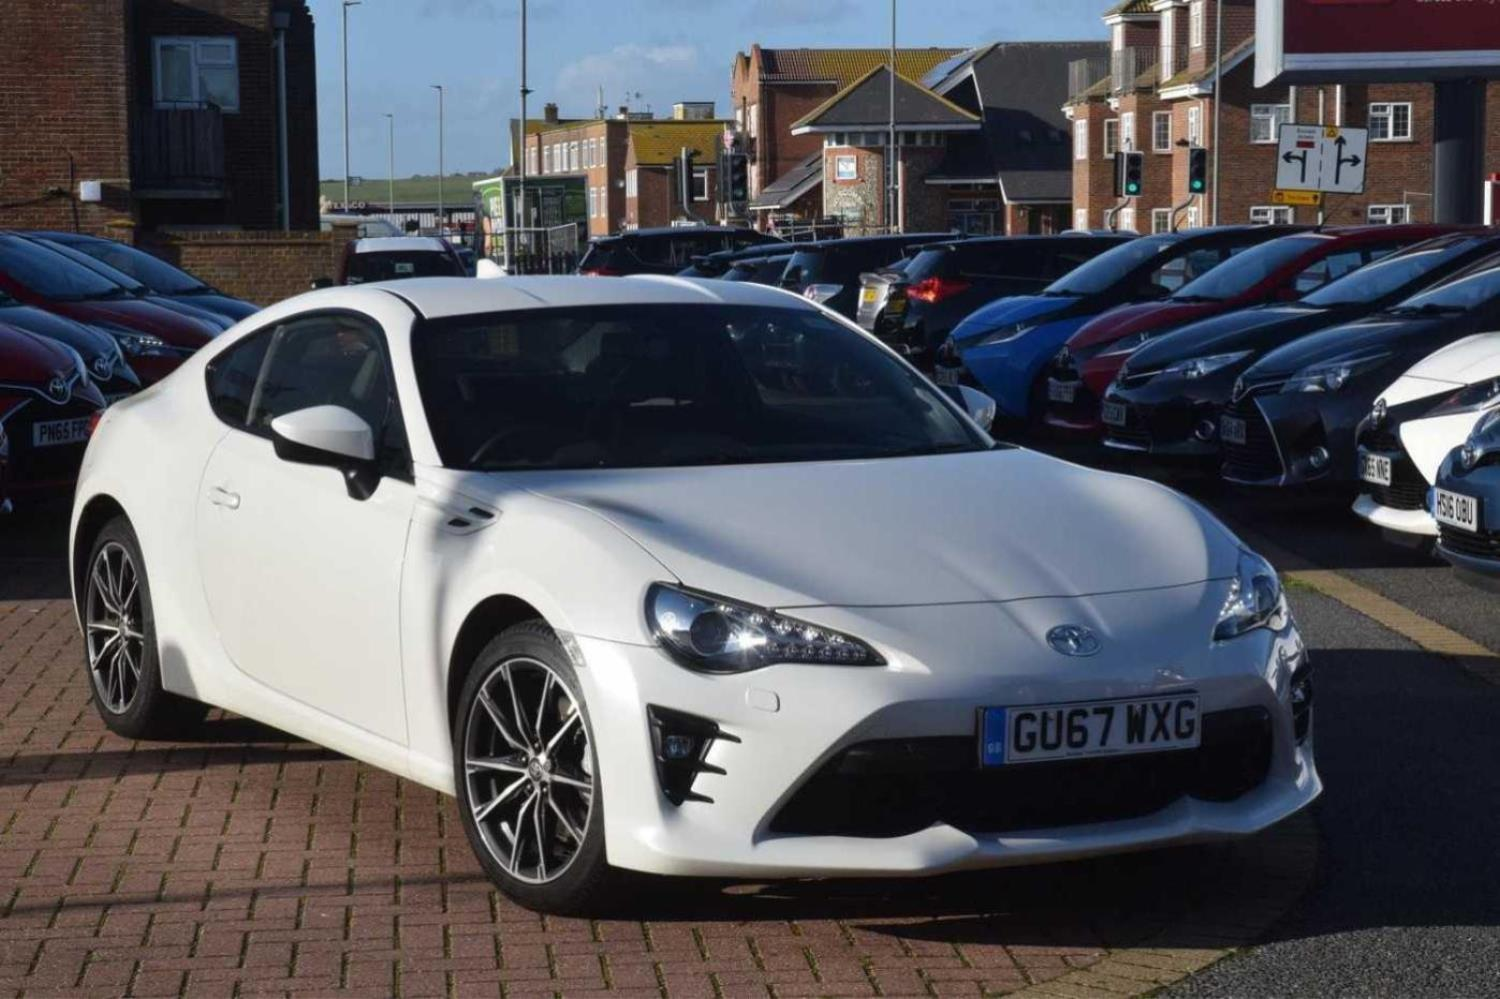 Toyota Gt86 2.0 PRO Coupe Petrol white